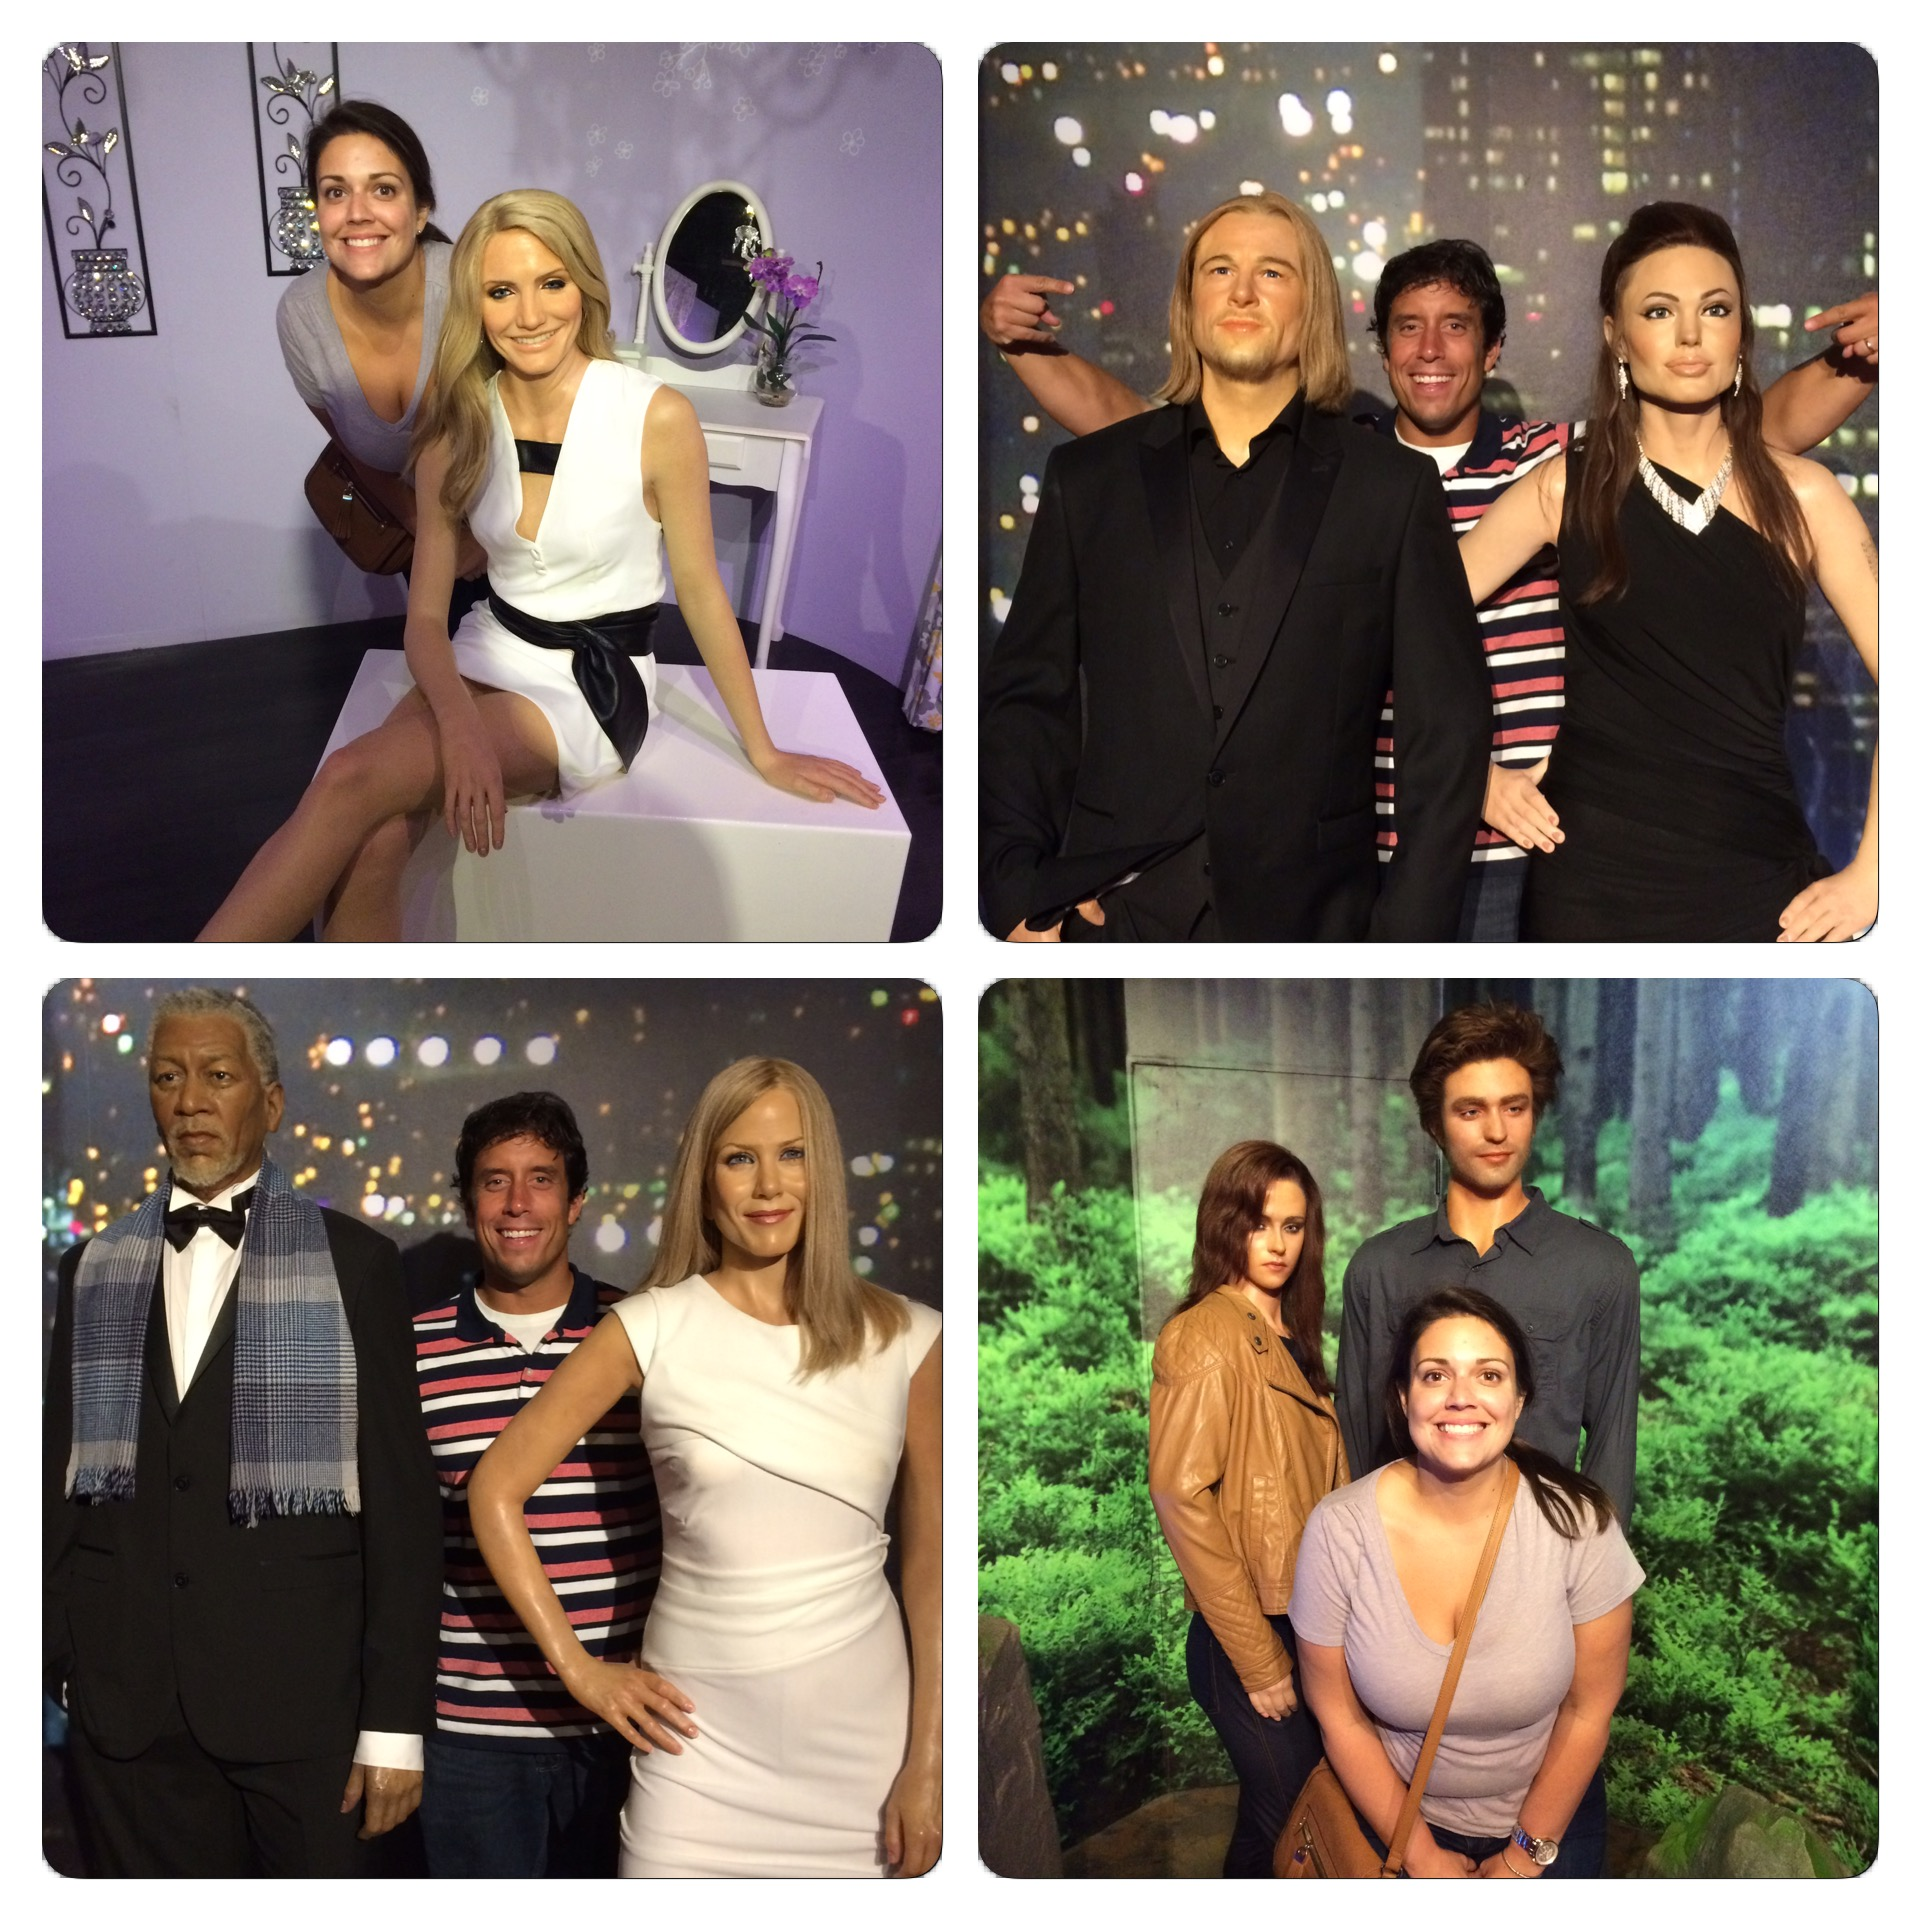 The Hollywood Wax Museum is filled with replicas of famous celebrities.